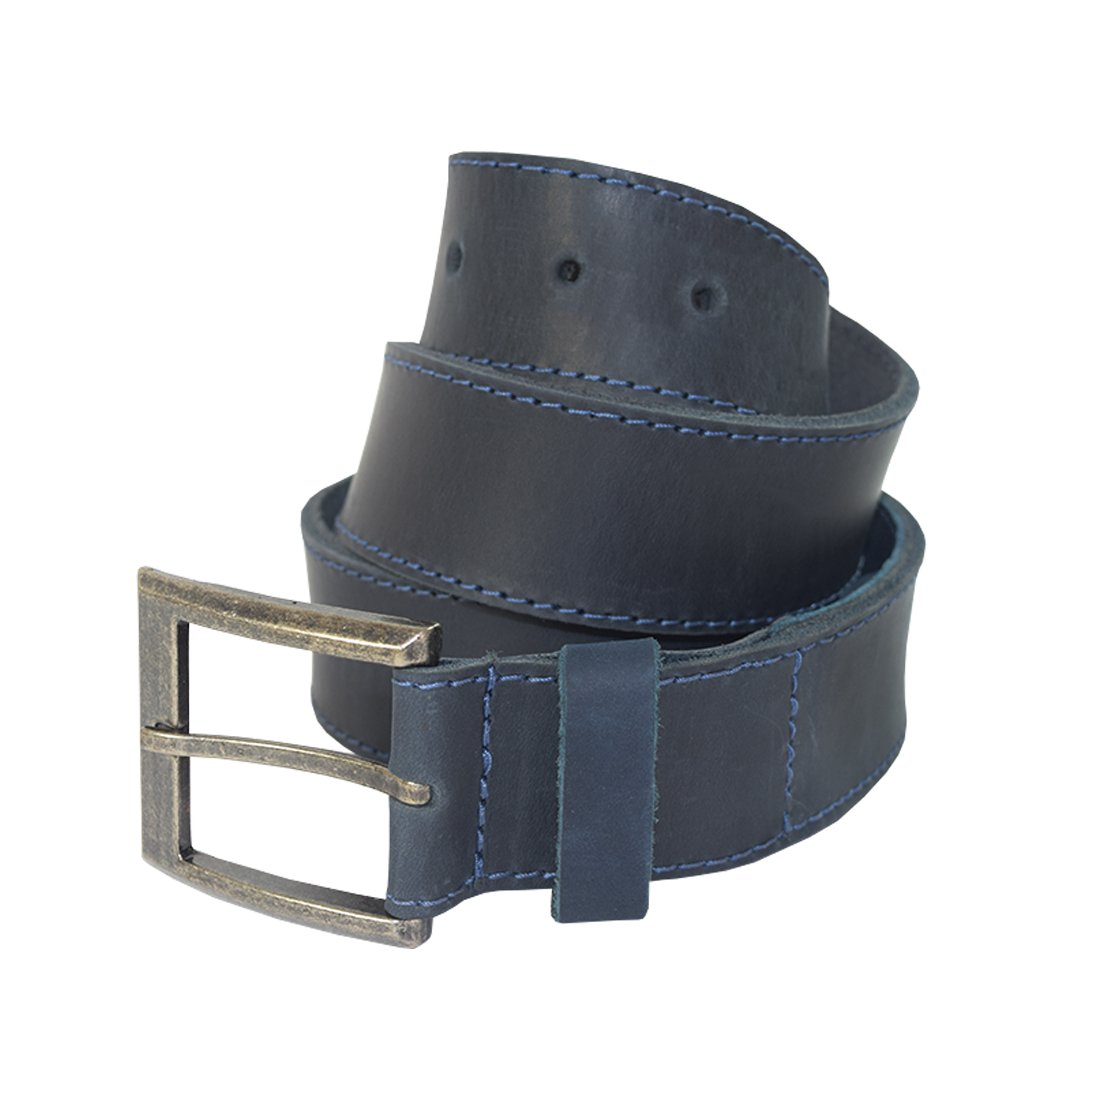 Slate Blue Thick Leather Belt With Hidden Pocket Handmade by Hide /& Drink Includes 101 Year Warranty